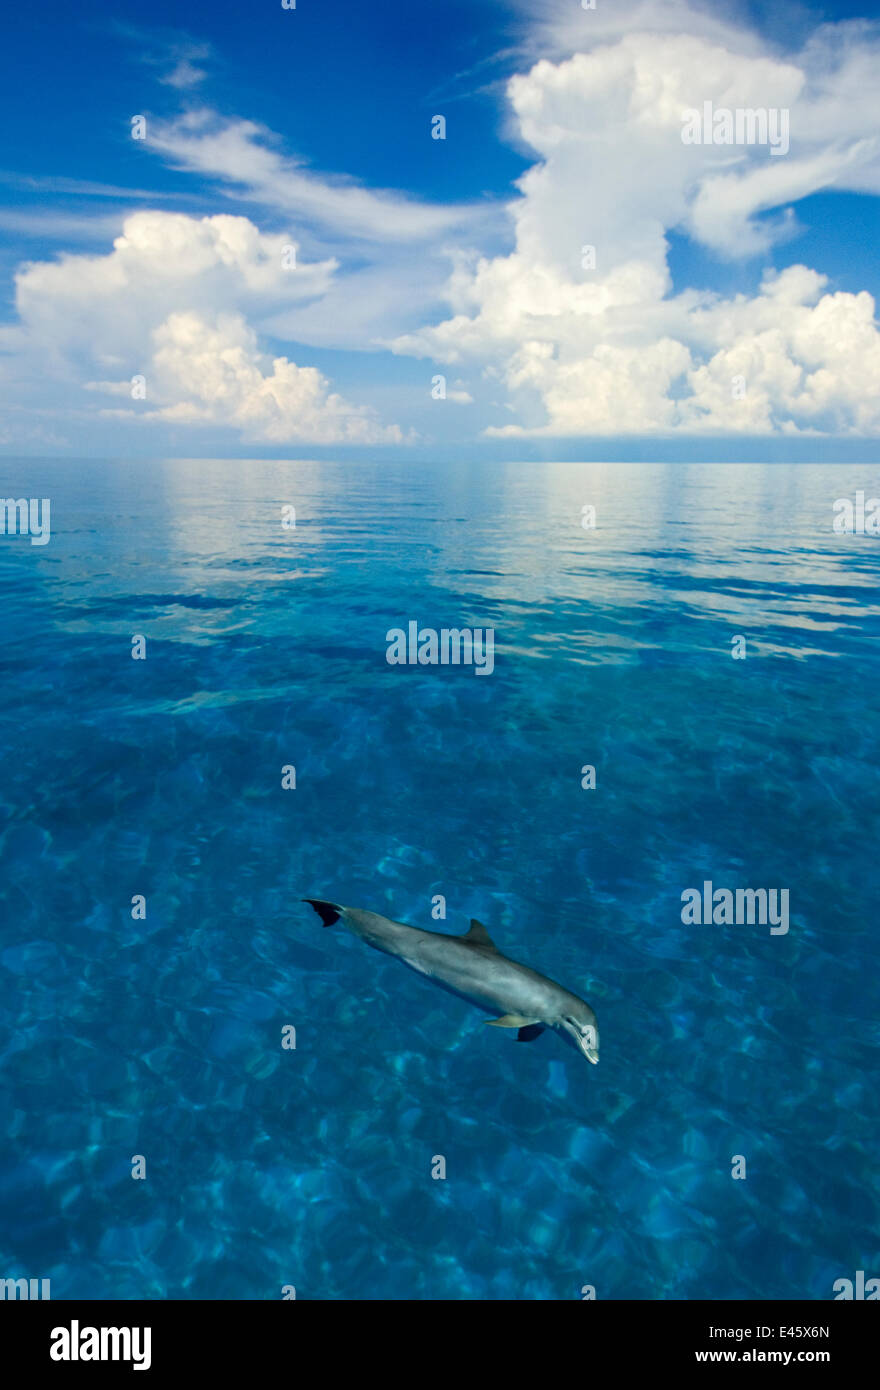 Bottlenose dolphin (Tursiops truncatus) in shallow water over a sand bank. Sandy Ridge, Little Bahama Bank, Bahamas. - Stock Image